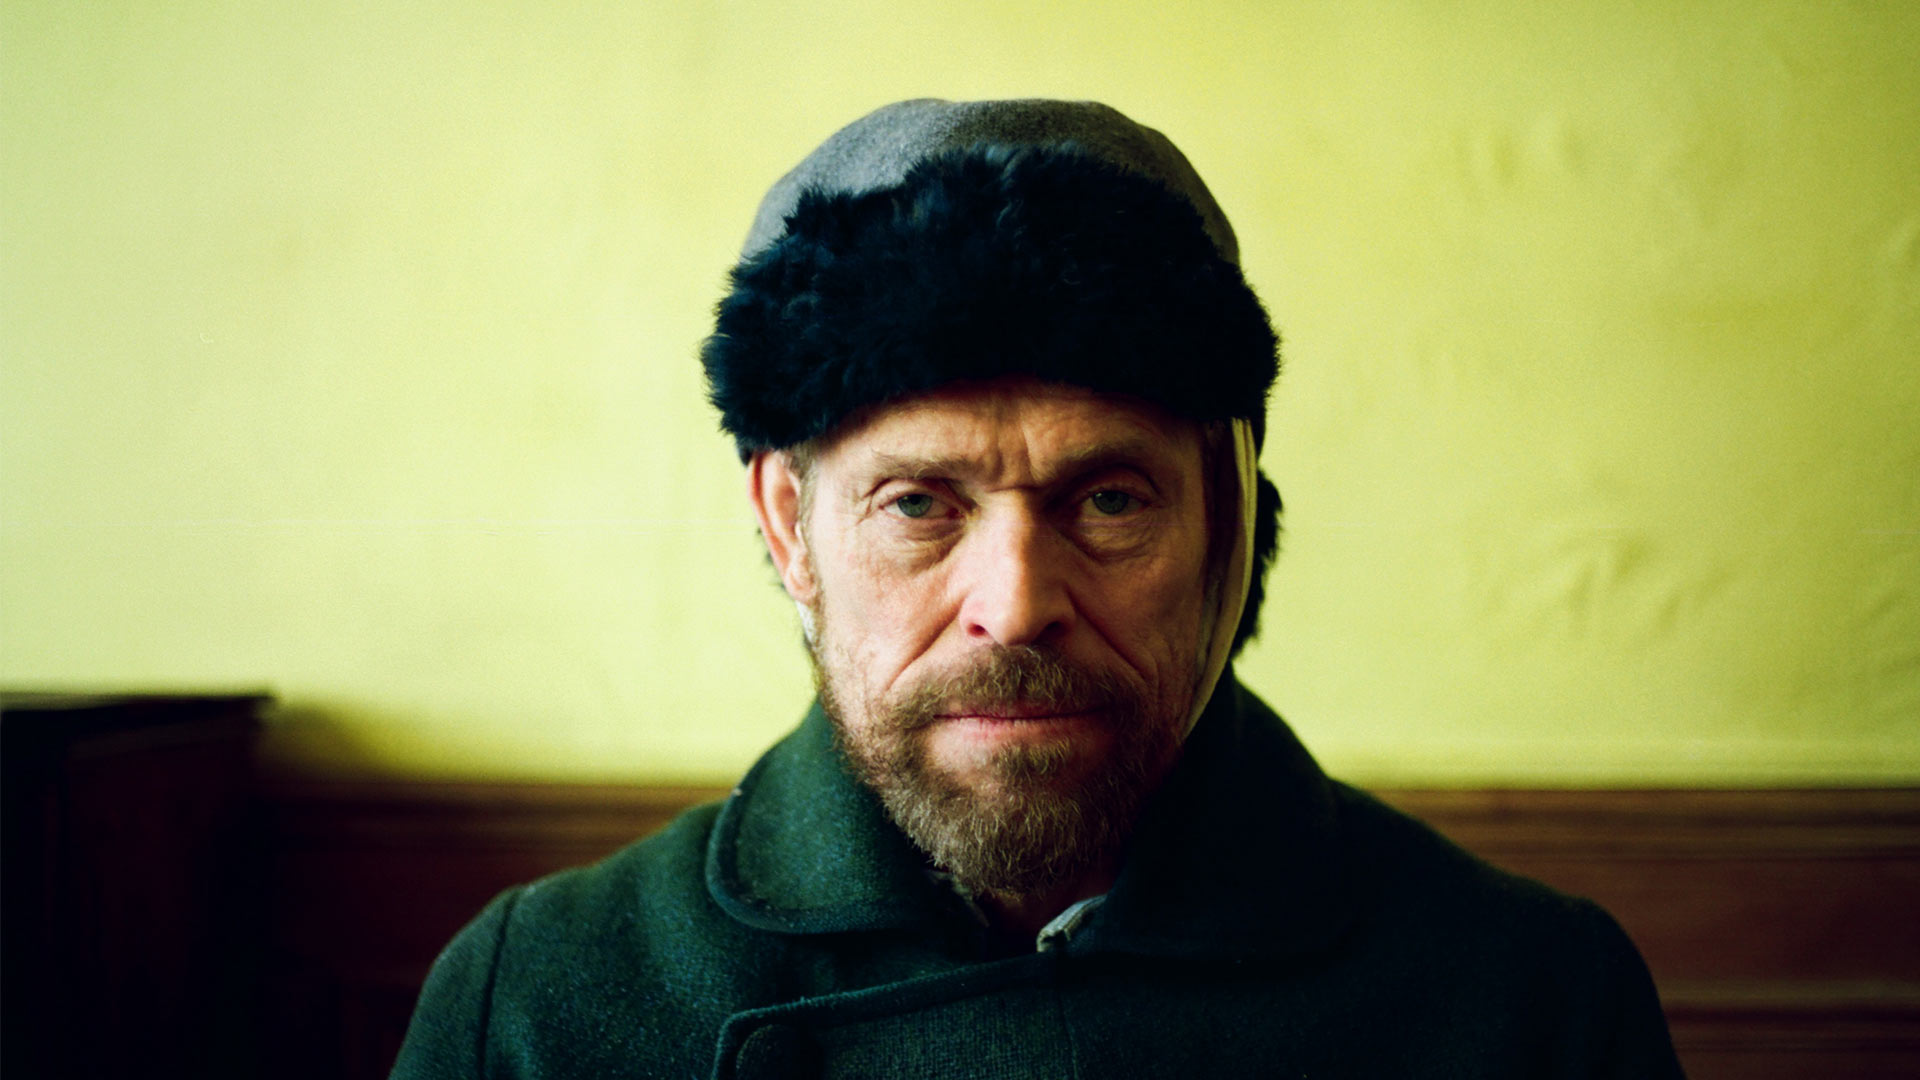 Figure 3: Willem Dafoe as Vincent Van Gogh in At Eternity's Gate.